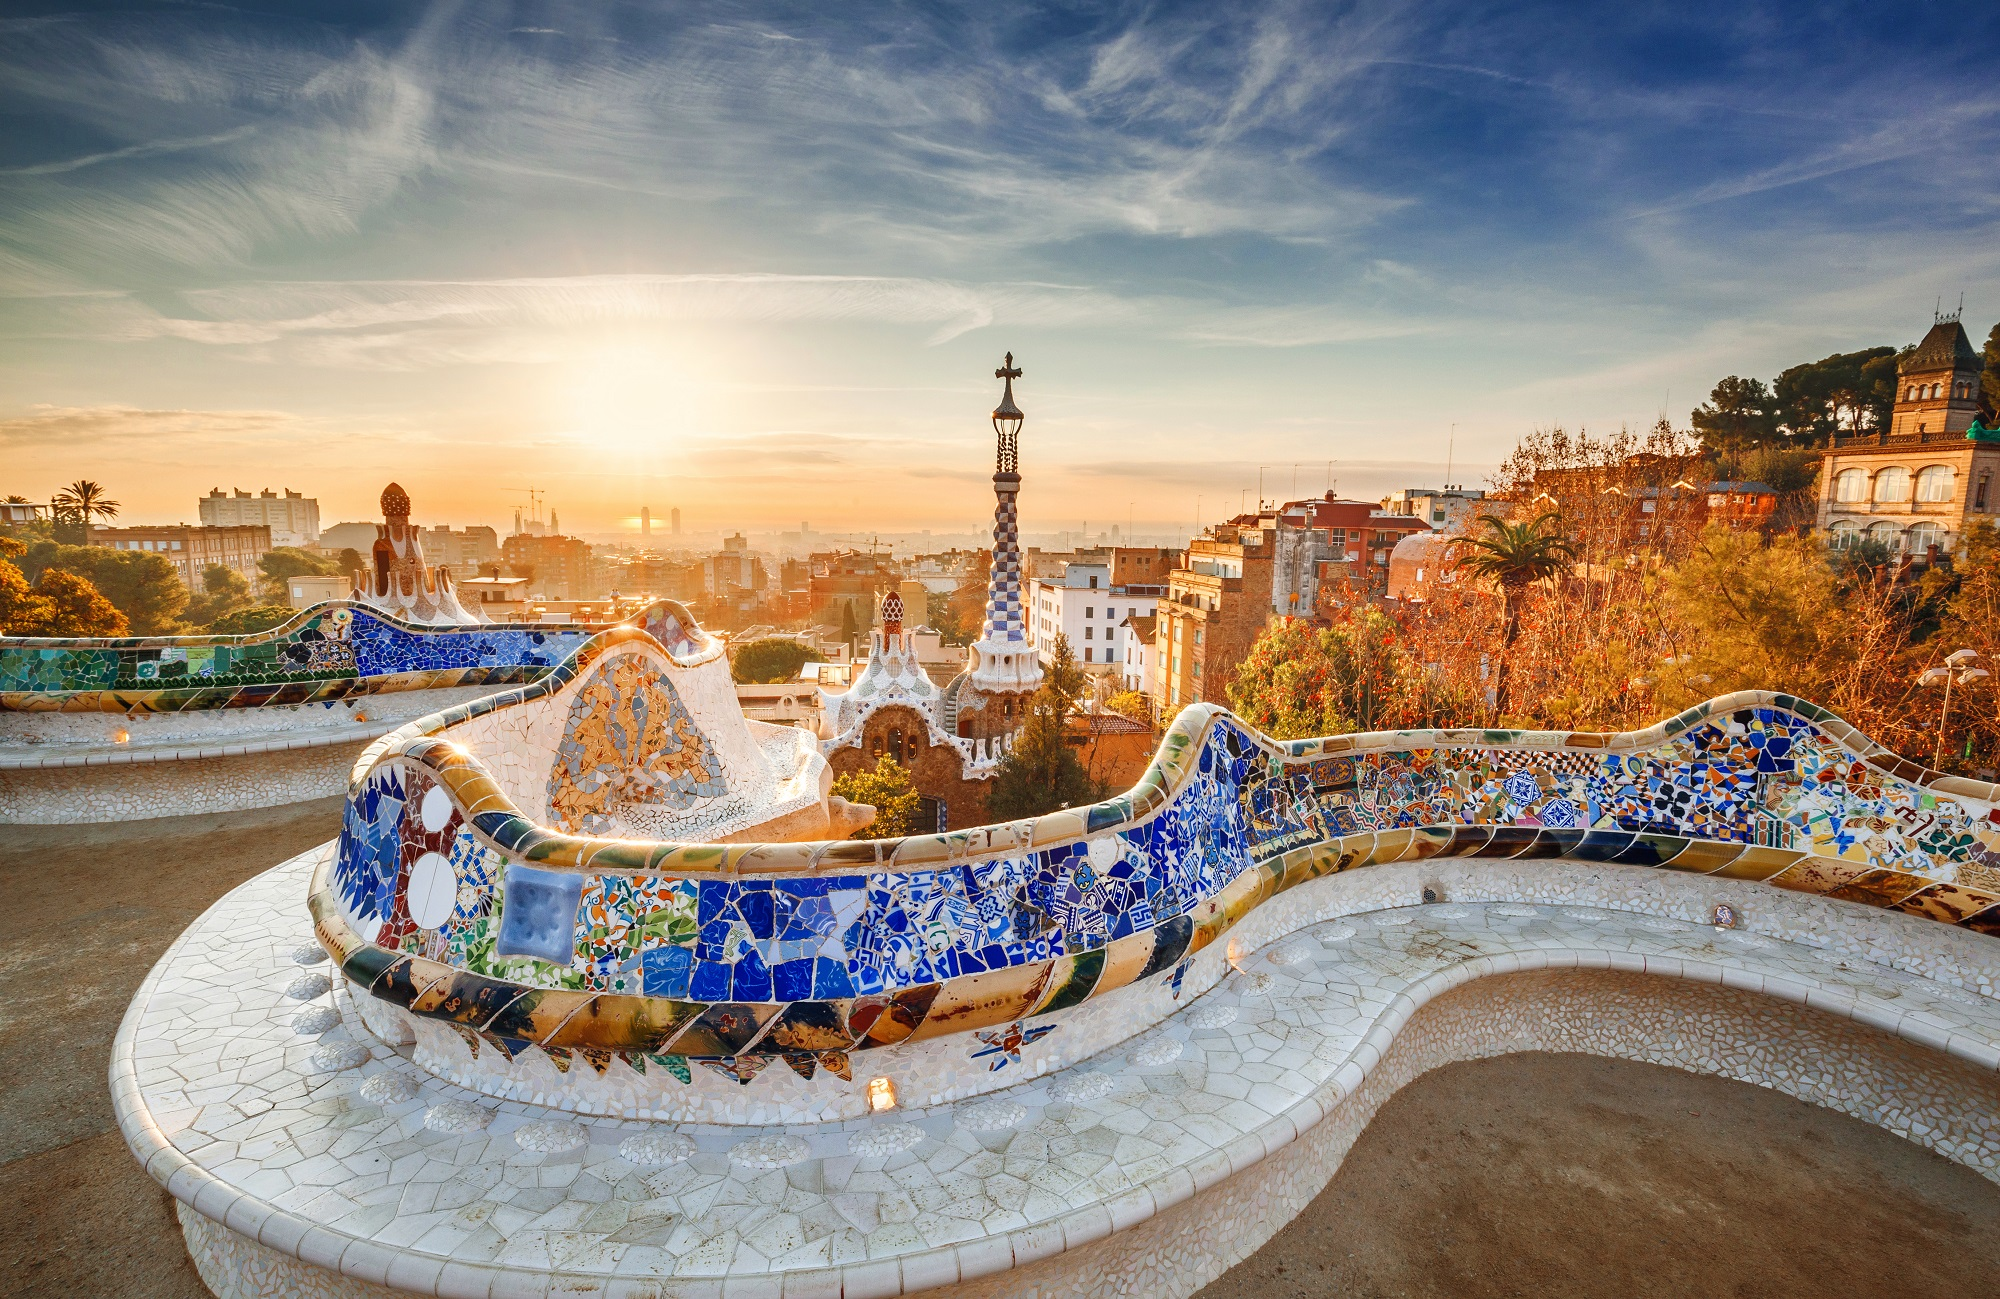 Barcelona Facts - Barcelona and Park At Sunset